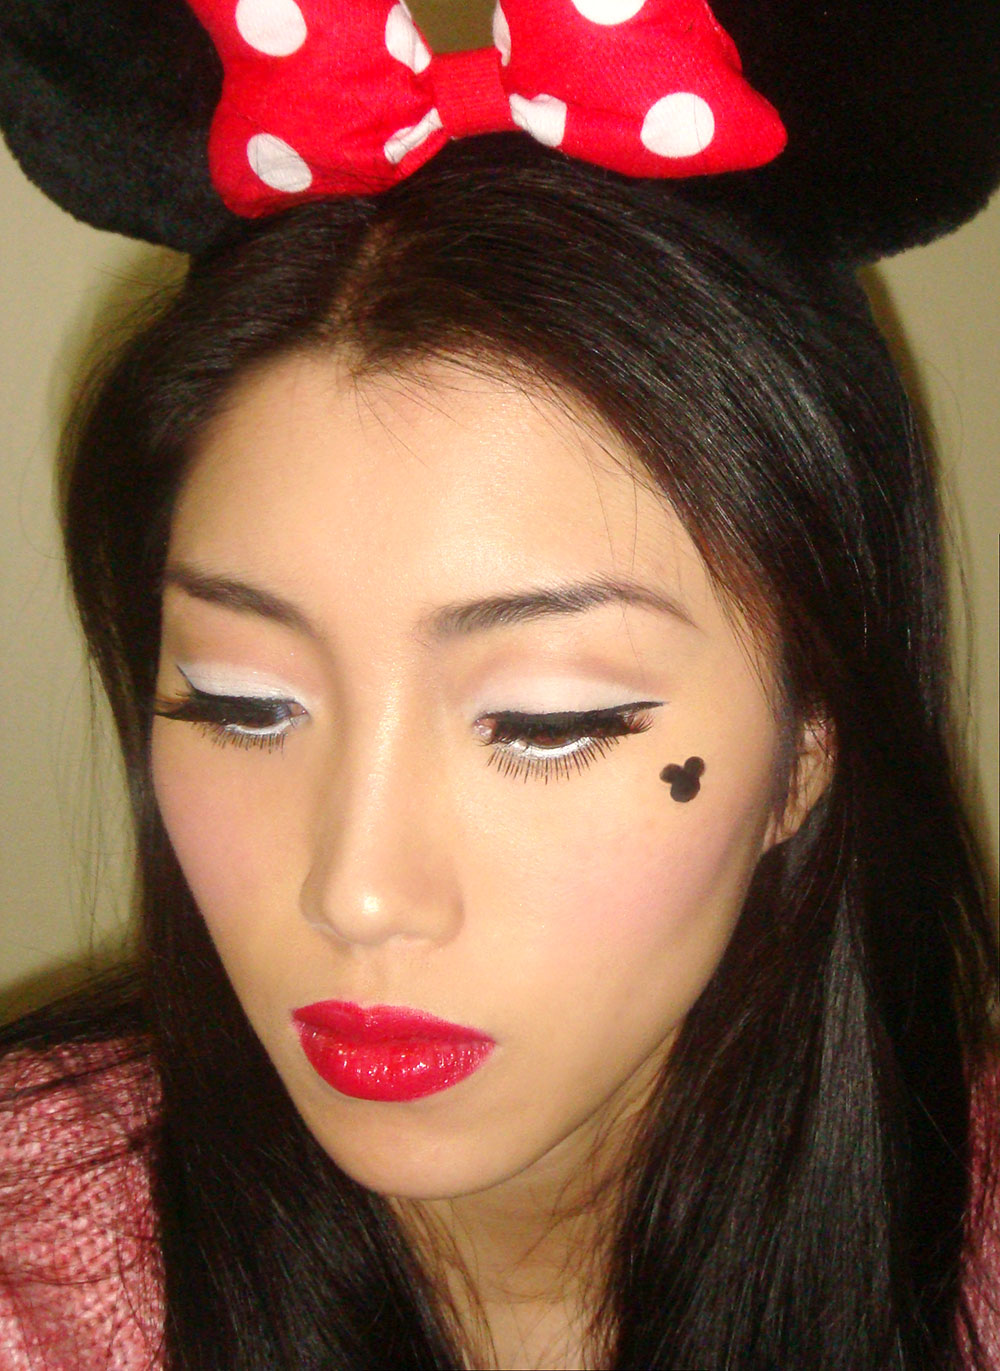 FOTD: Minnie Mouse Makeup Look For Halloween - Makeup For Life